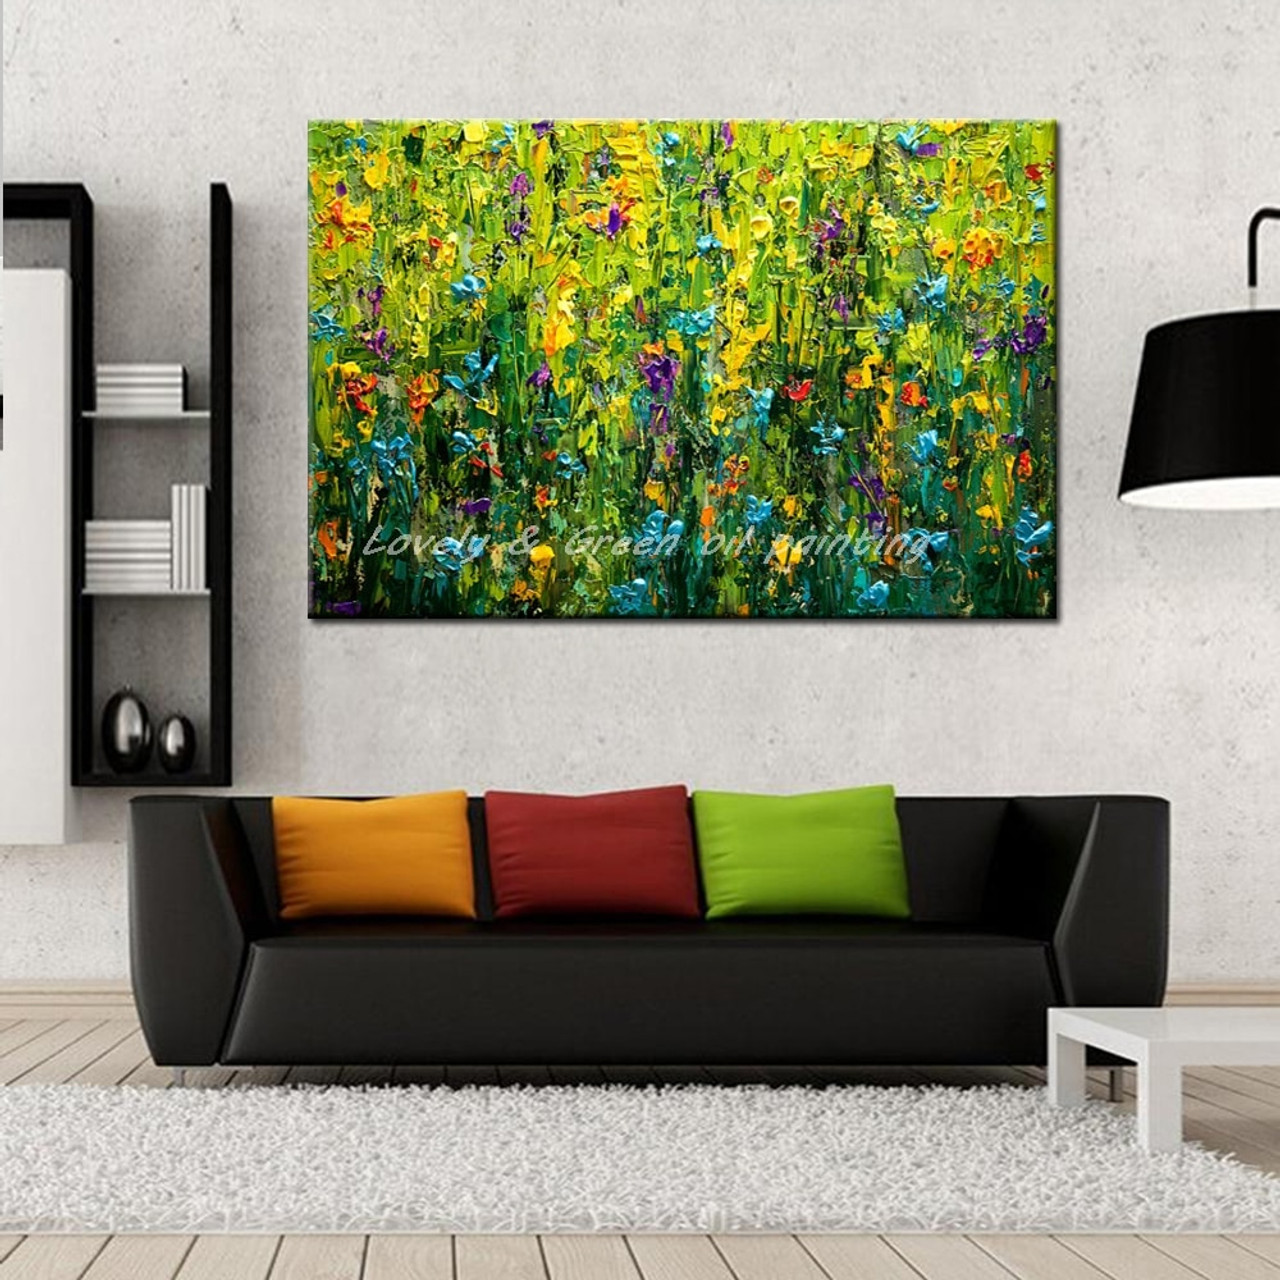 Hand Painted Canvas Paintings For Bedroom Decoration Pictures On The Wall Modern Abstract Oil Painting Unframed Canvas Art Wall Onshopdeals Com